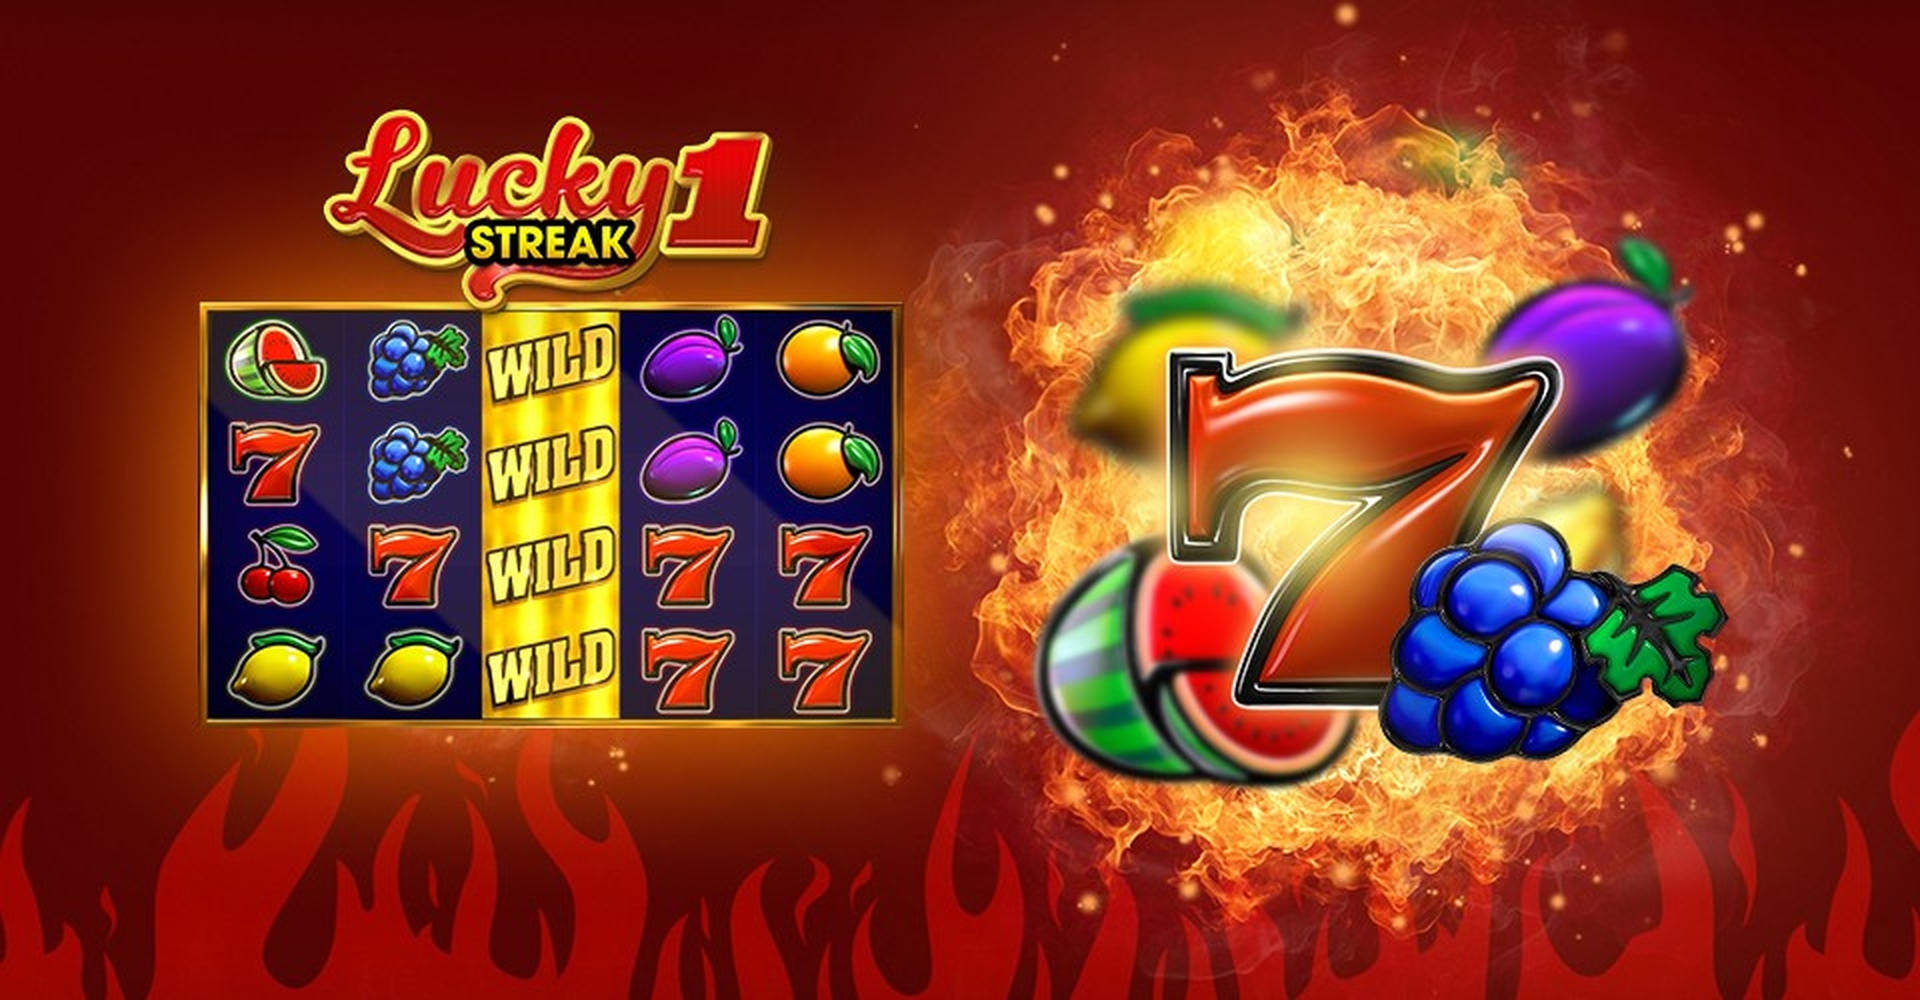 The Lucky streak 1 Online Slot Demo Game by Endorphina